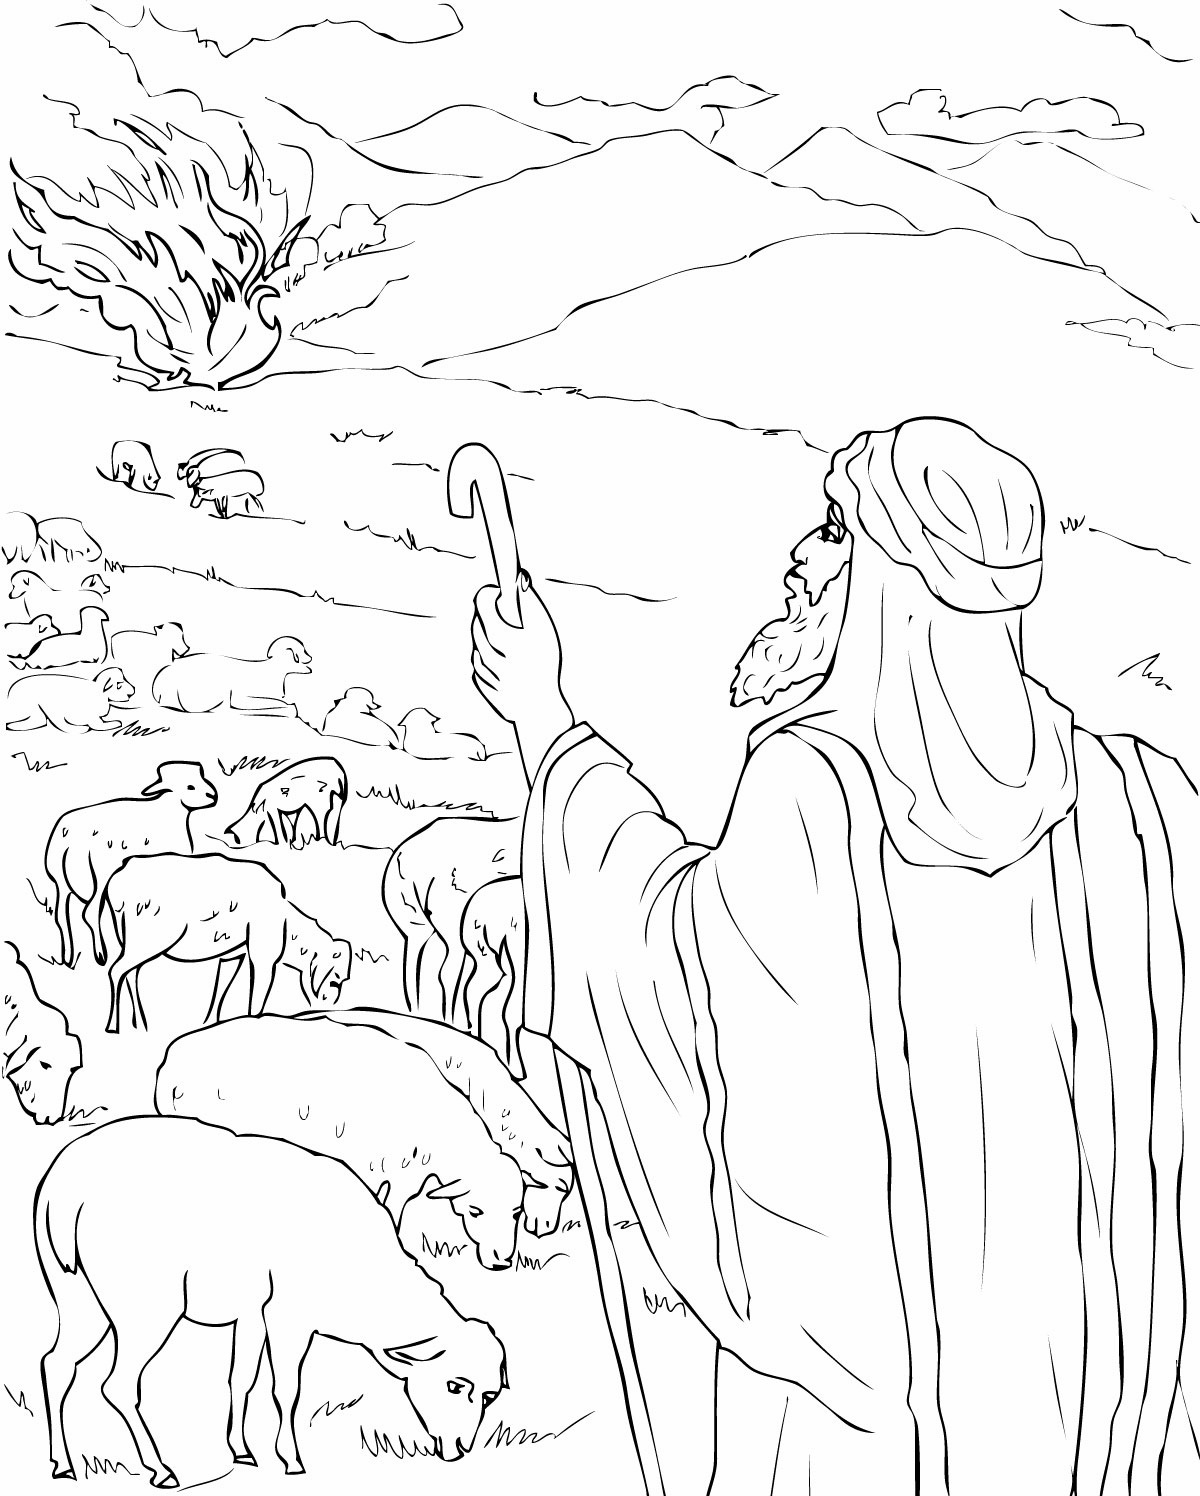 moses coloring pages moses coloring pages kidsuki coloring moses pages